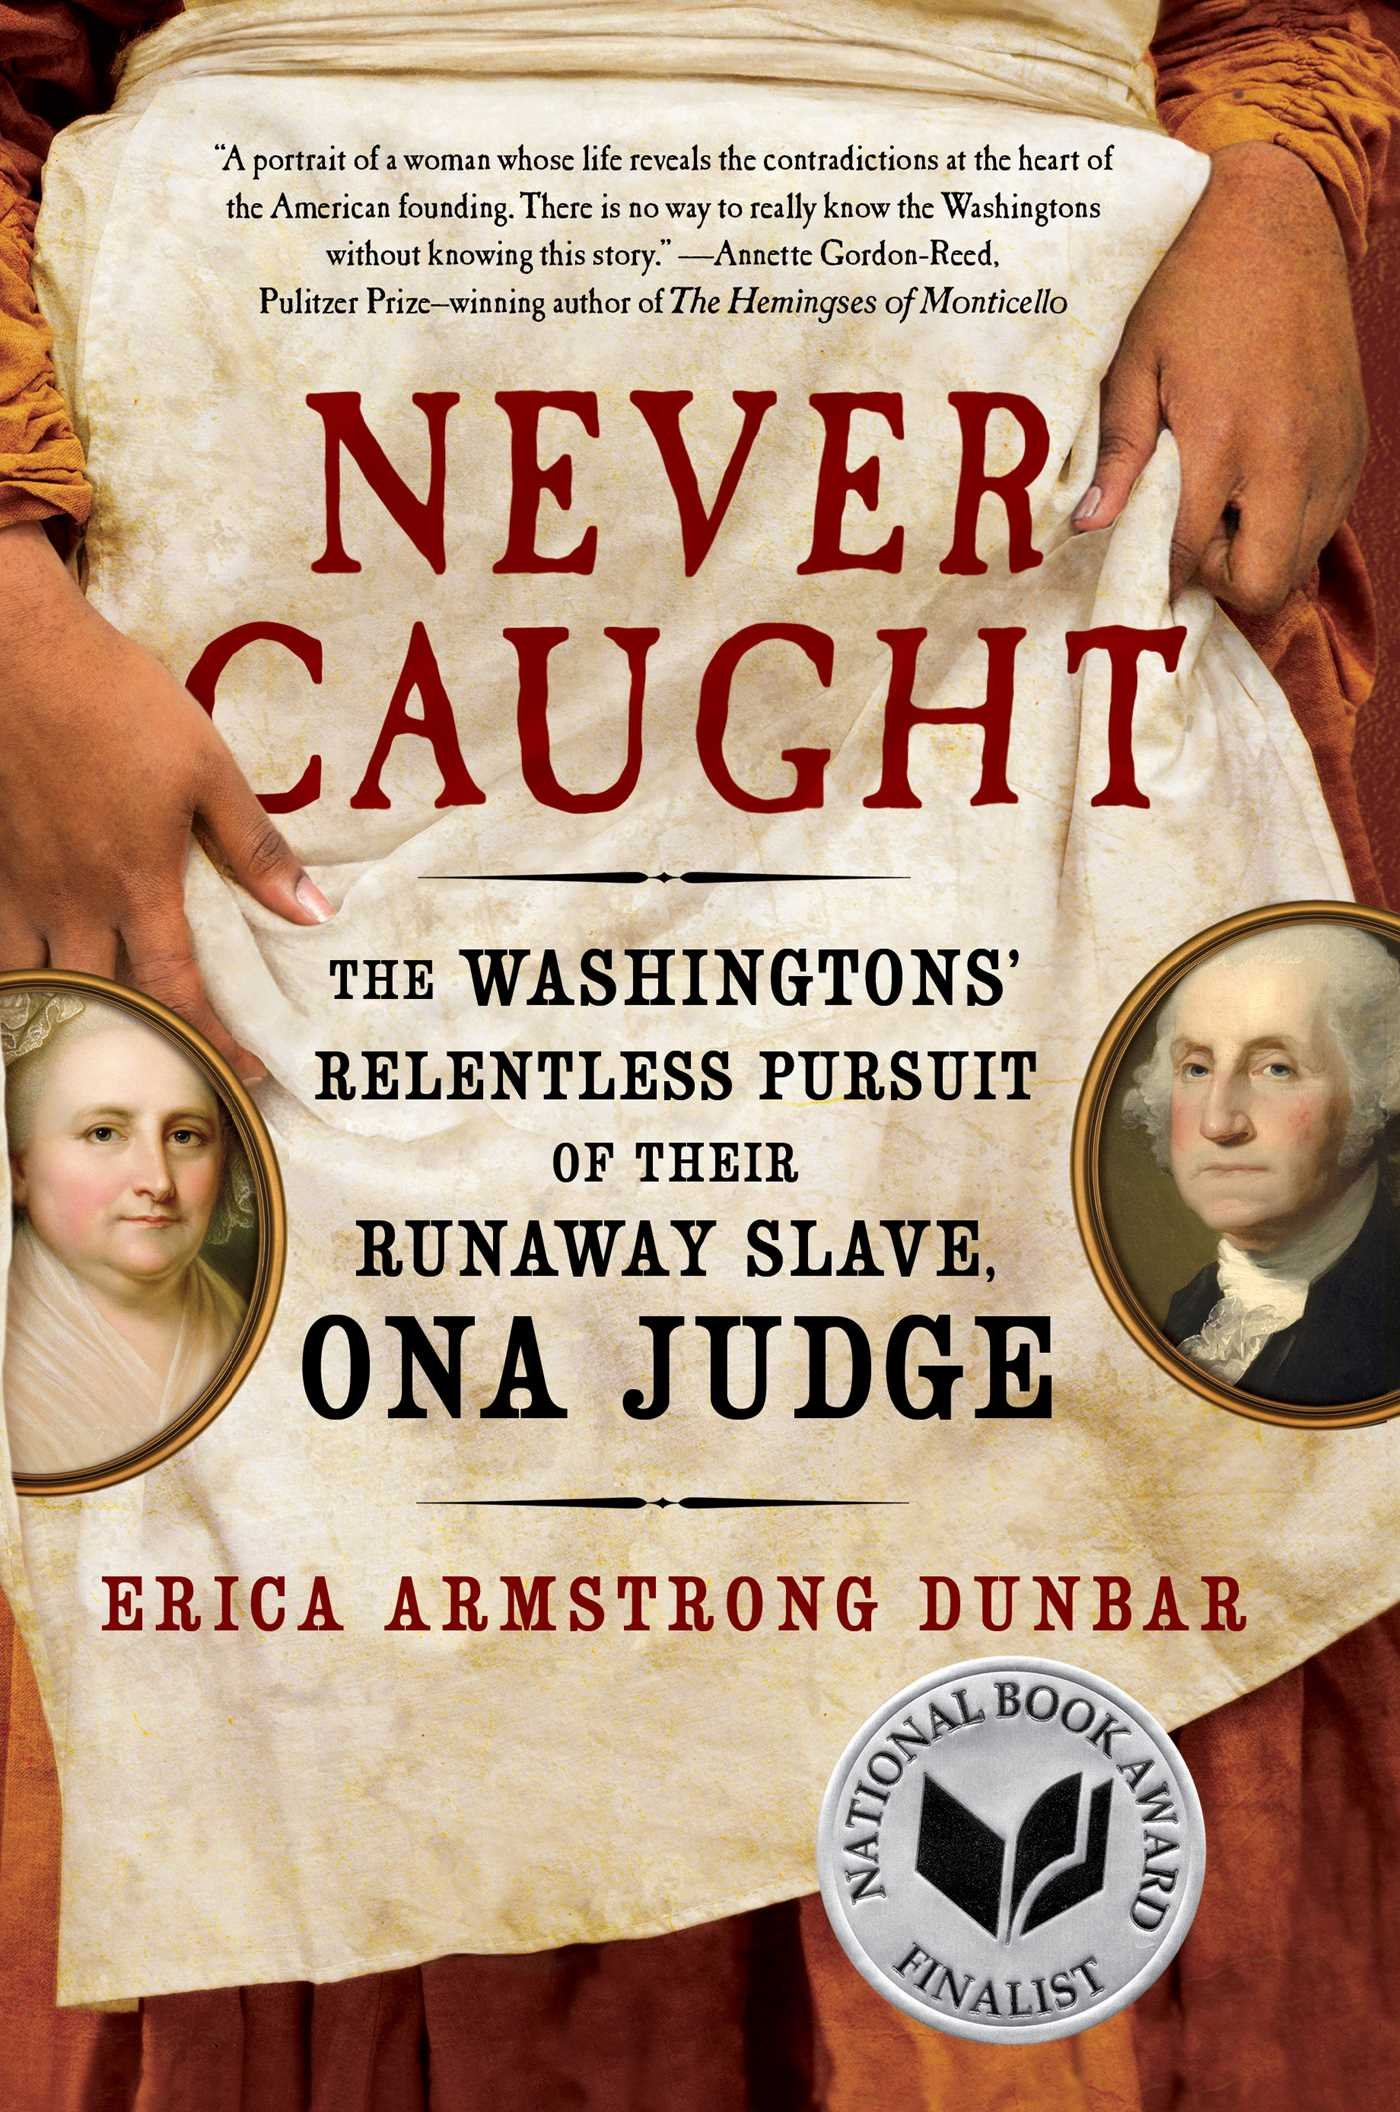 Book  Discussion - Never Caught: The Washingtons' Relentless Pursuit of Their Runaway Slave, Ona Judge